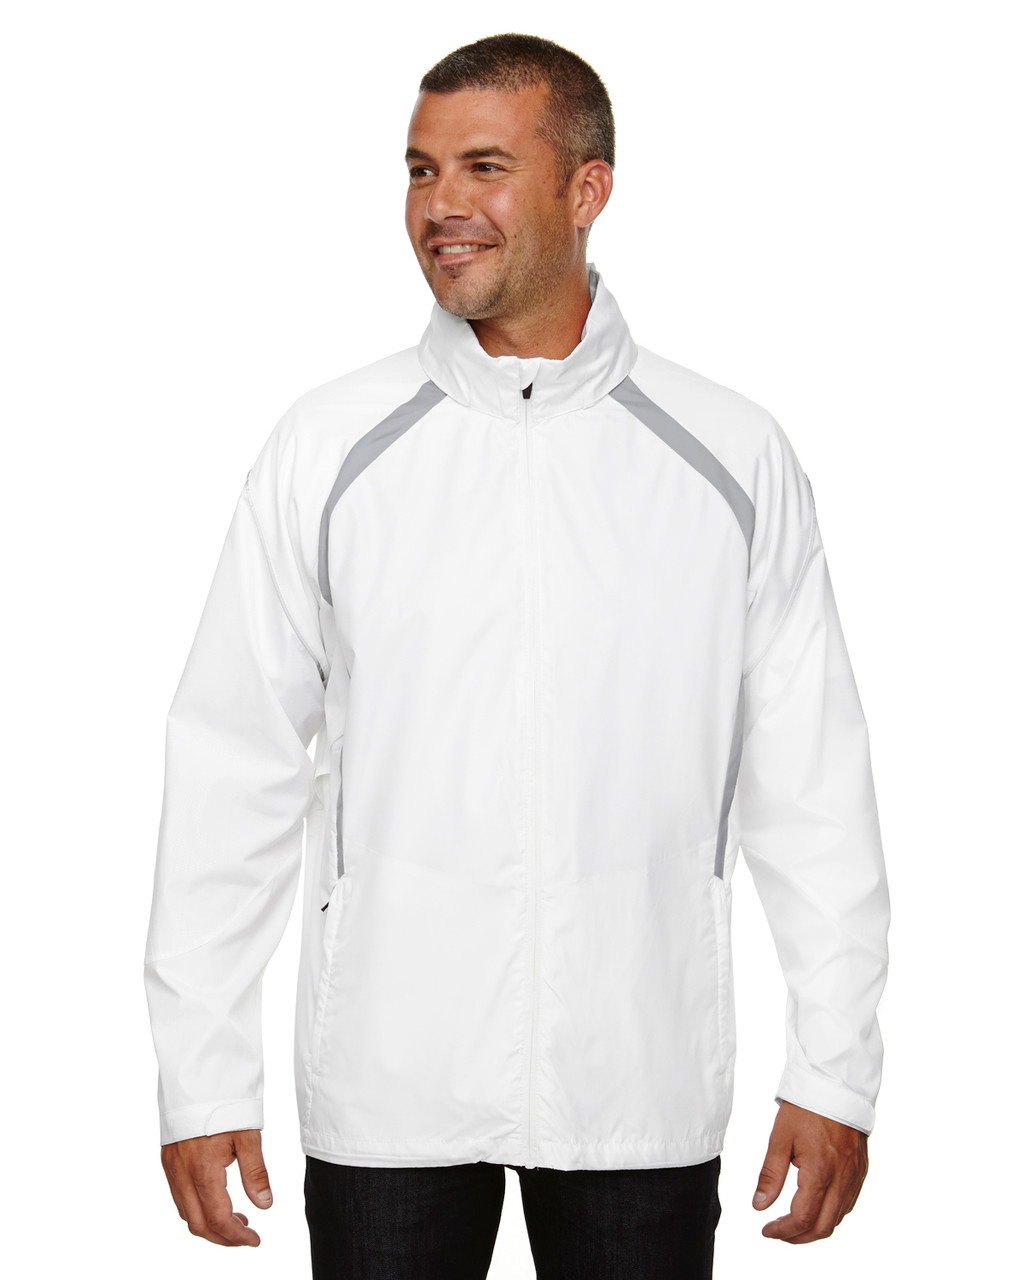 White - 88168 North End Sirius Lightweight Jacket with Embossed Print | Blankclothing.ca